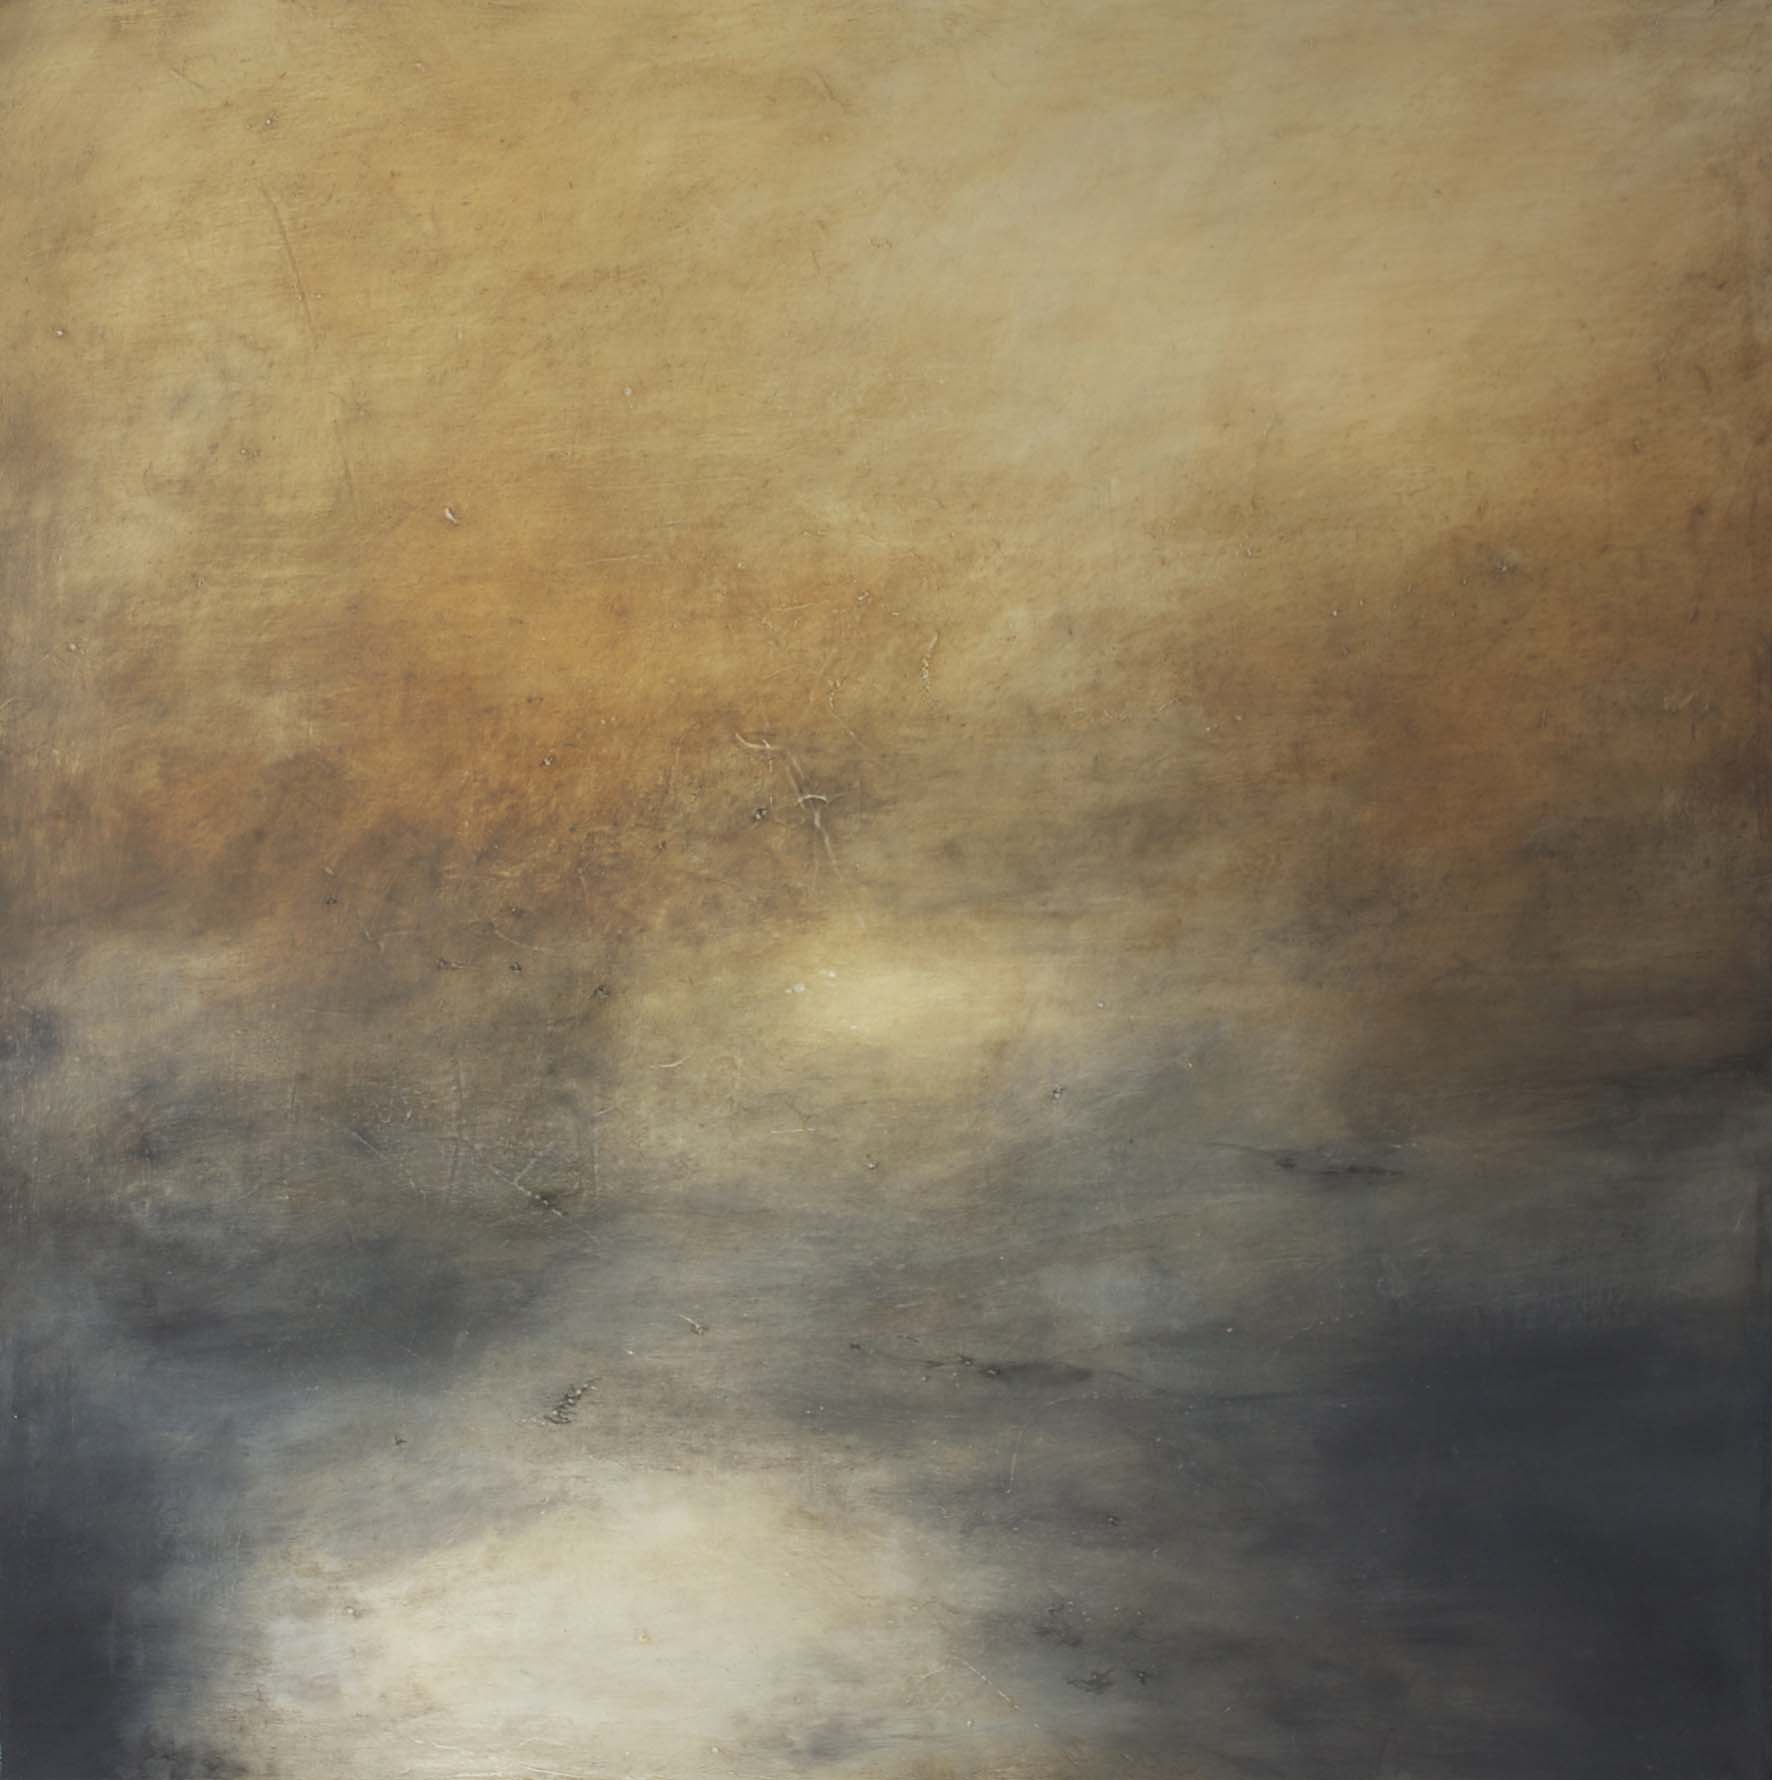 Artist: Victoria Graimes  Title: Ethereal Light II  Size: 90 x 90 cm  Medium: Oil on canvas  Price: £2250   Buy Now